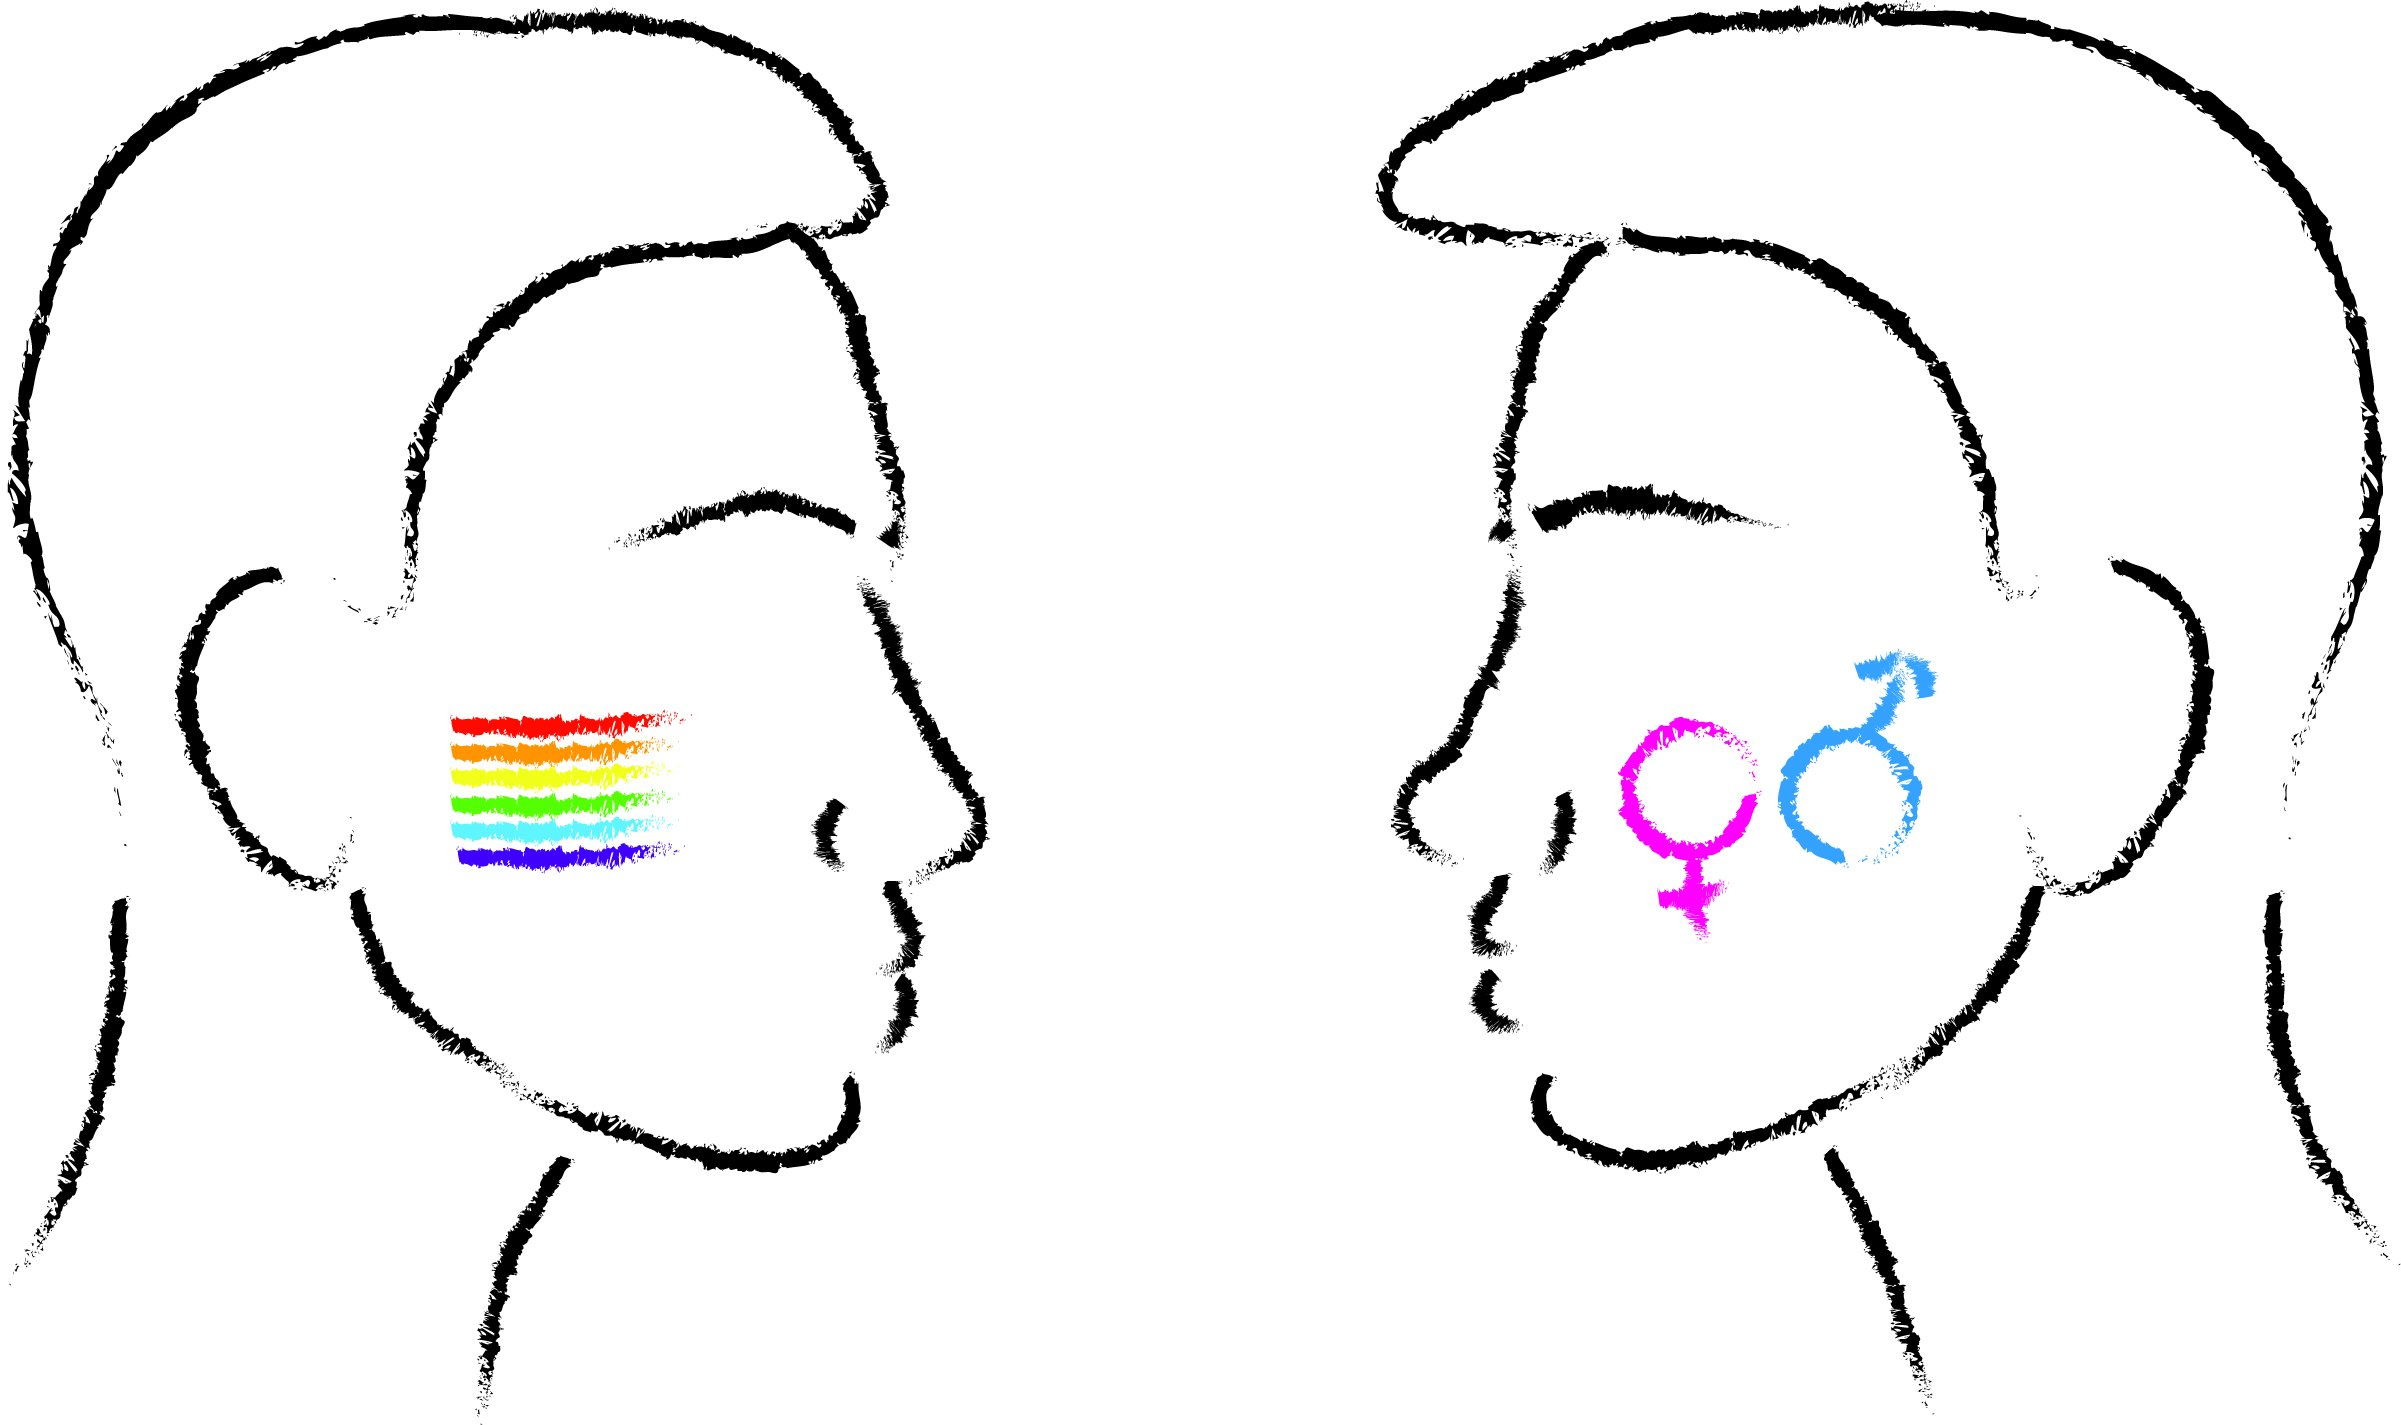 Straight pride seen as equilibrium rather than for ignoring the real reasons of LGBT+ pride.